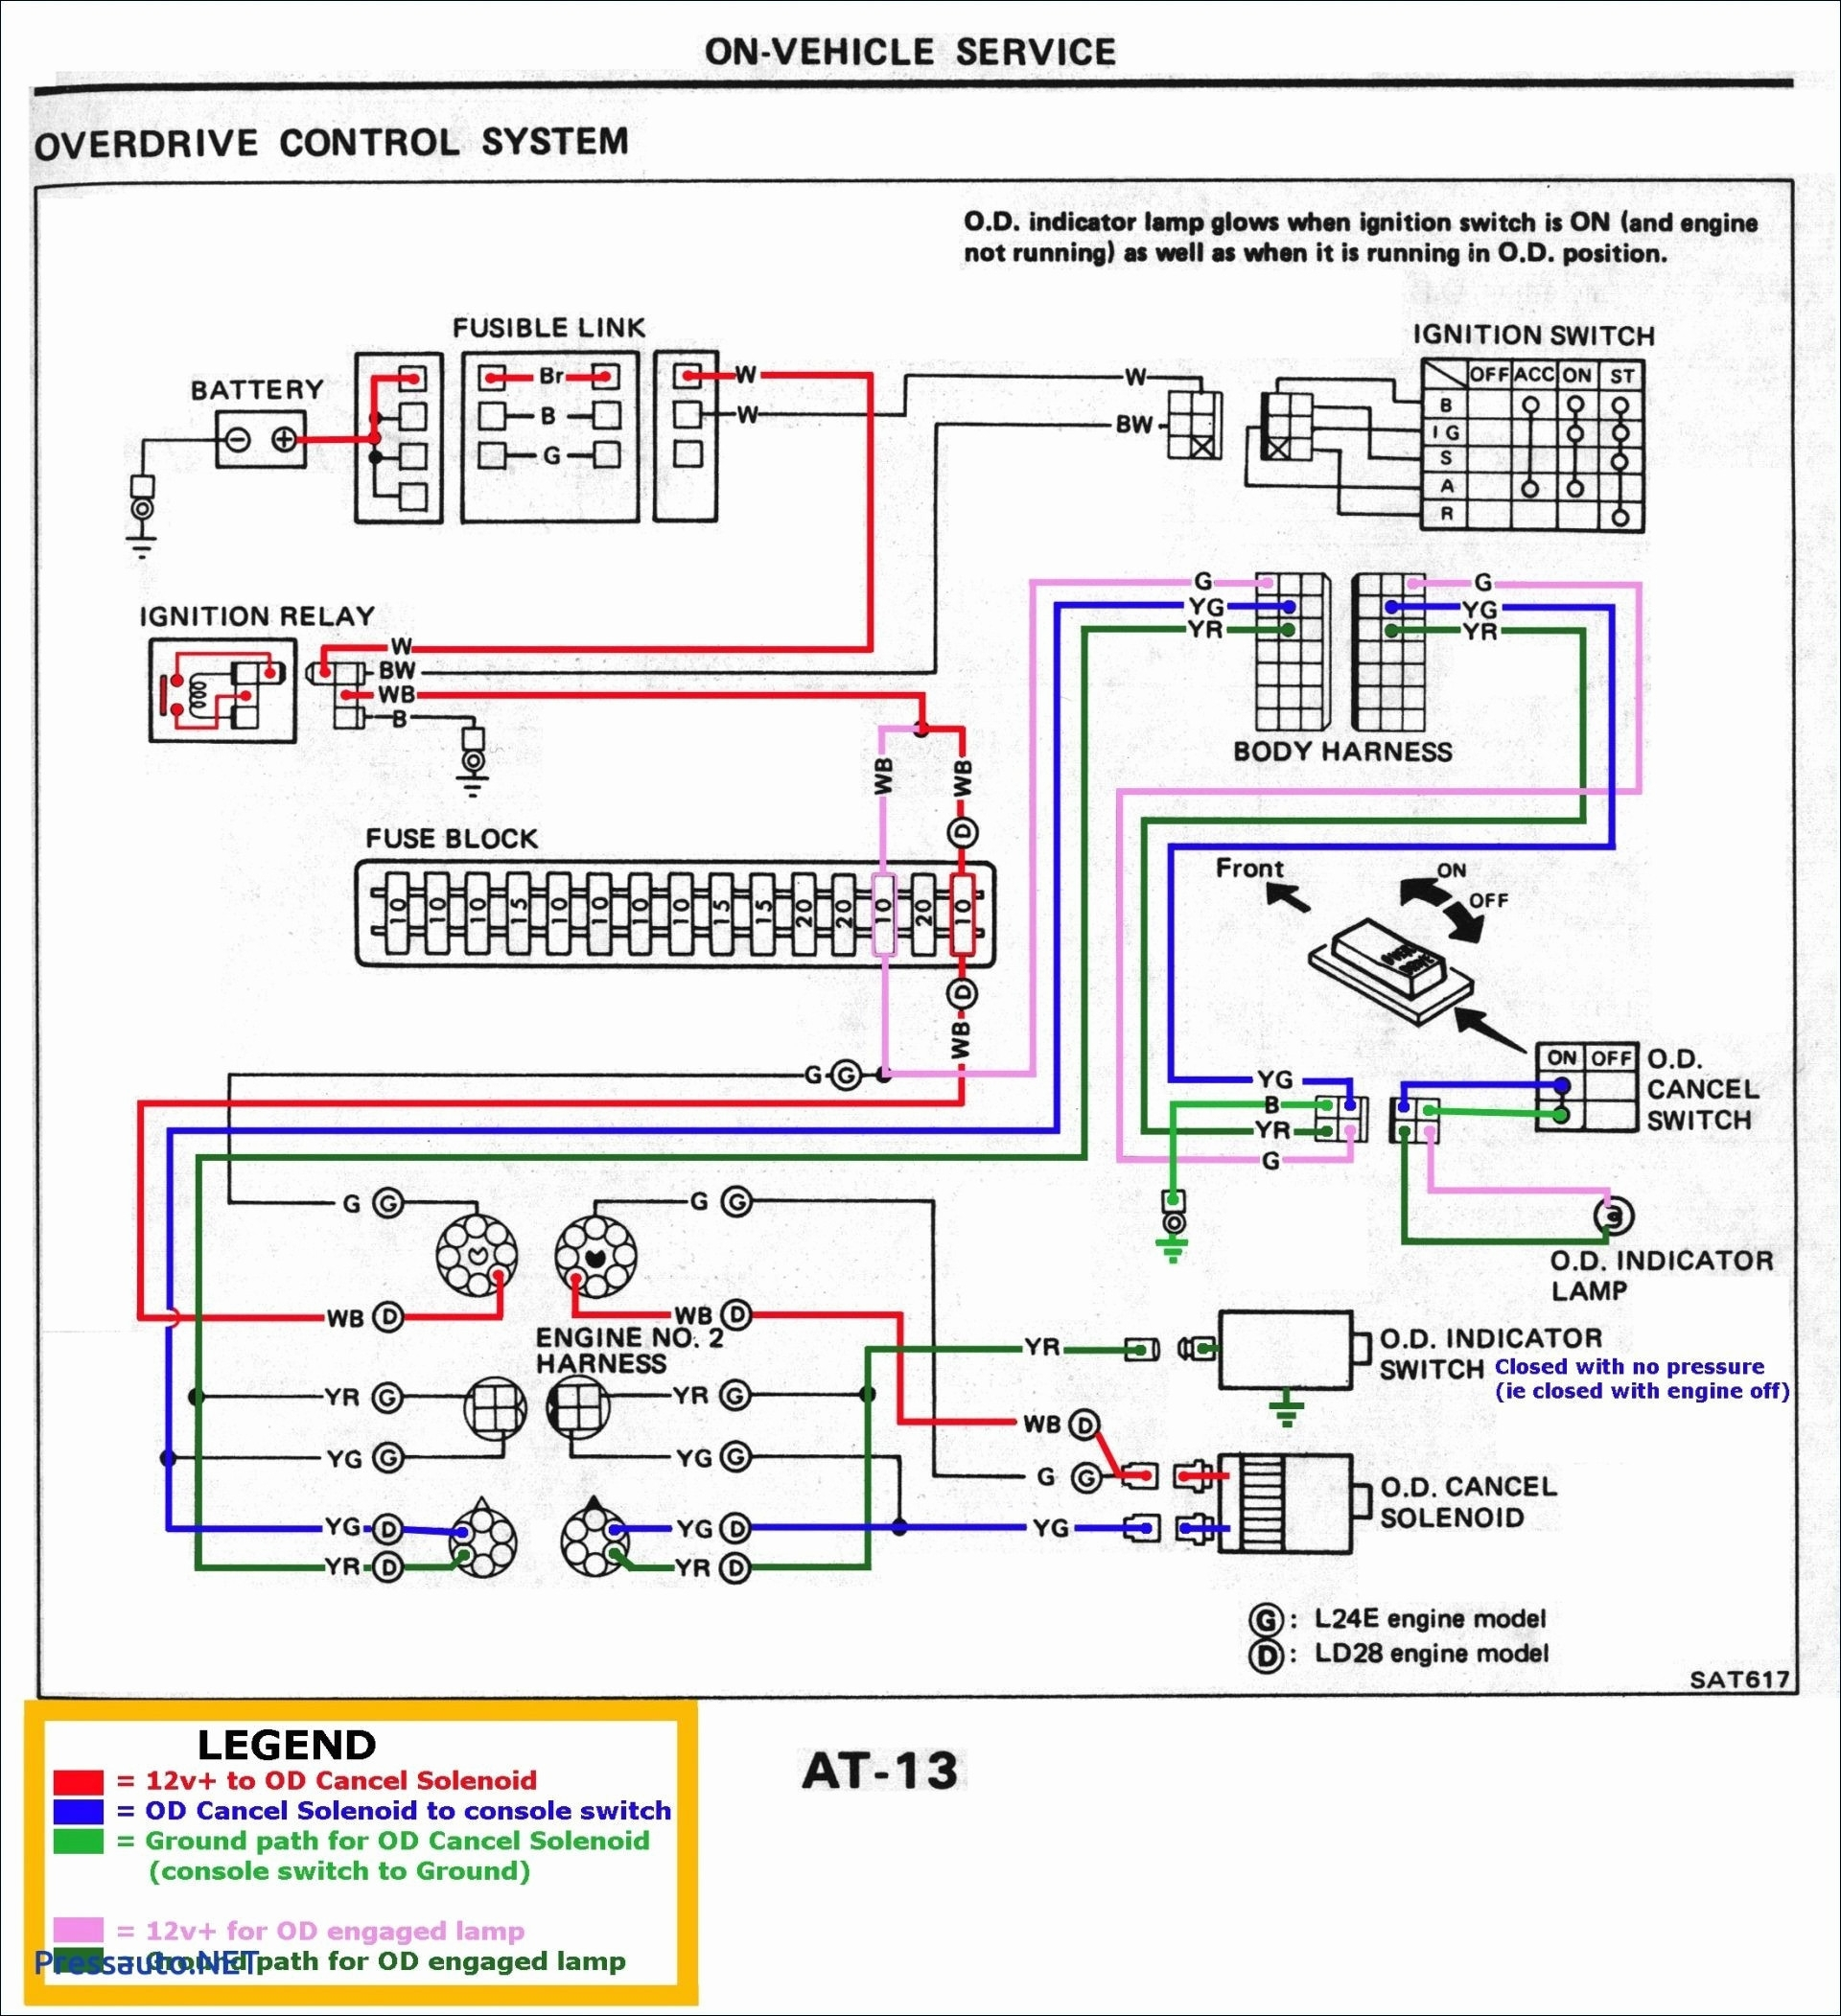 belimo lrb24 3 wiring diagram Collection-Belimo Lrb24 3 Wiring Diagram 4 Wire Strobe Light Wiring Diagram Relay Kit Wiring Diagram 19-m